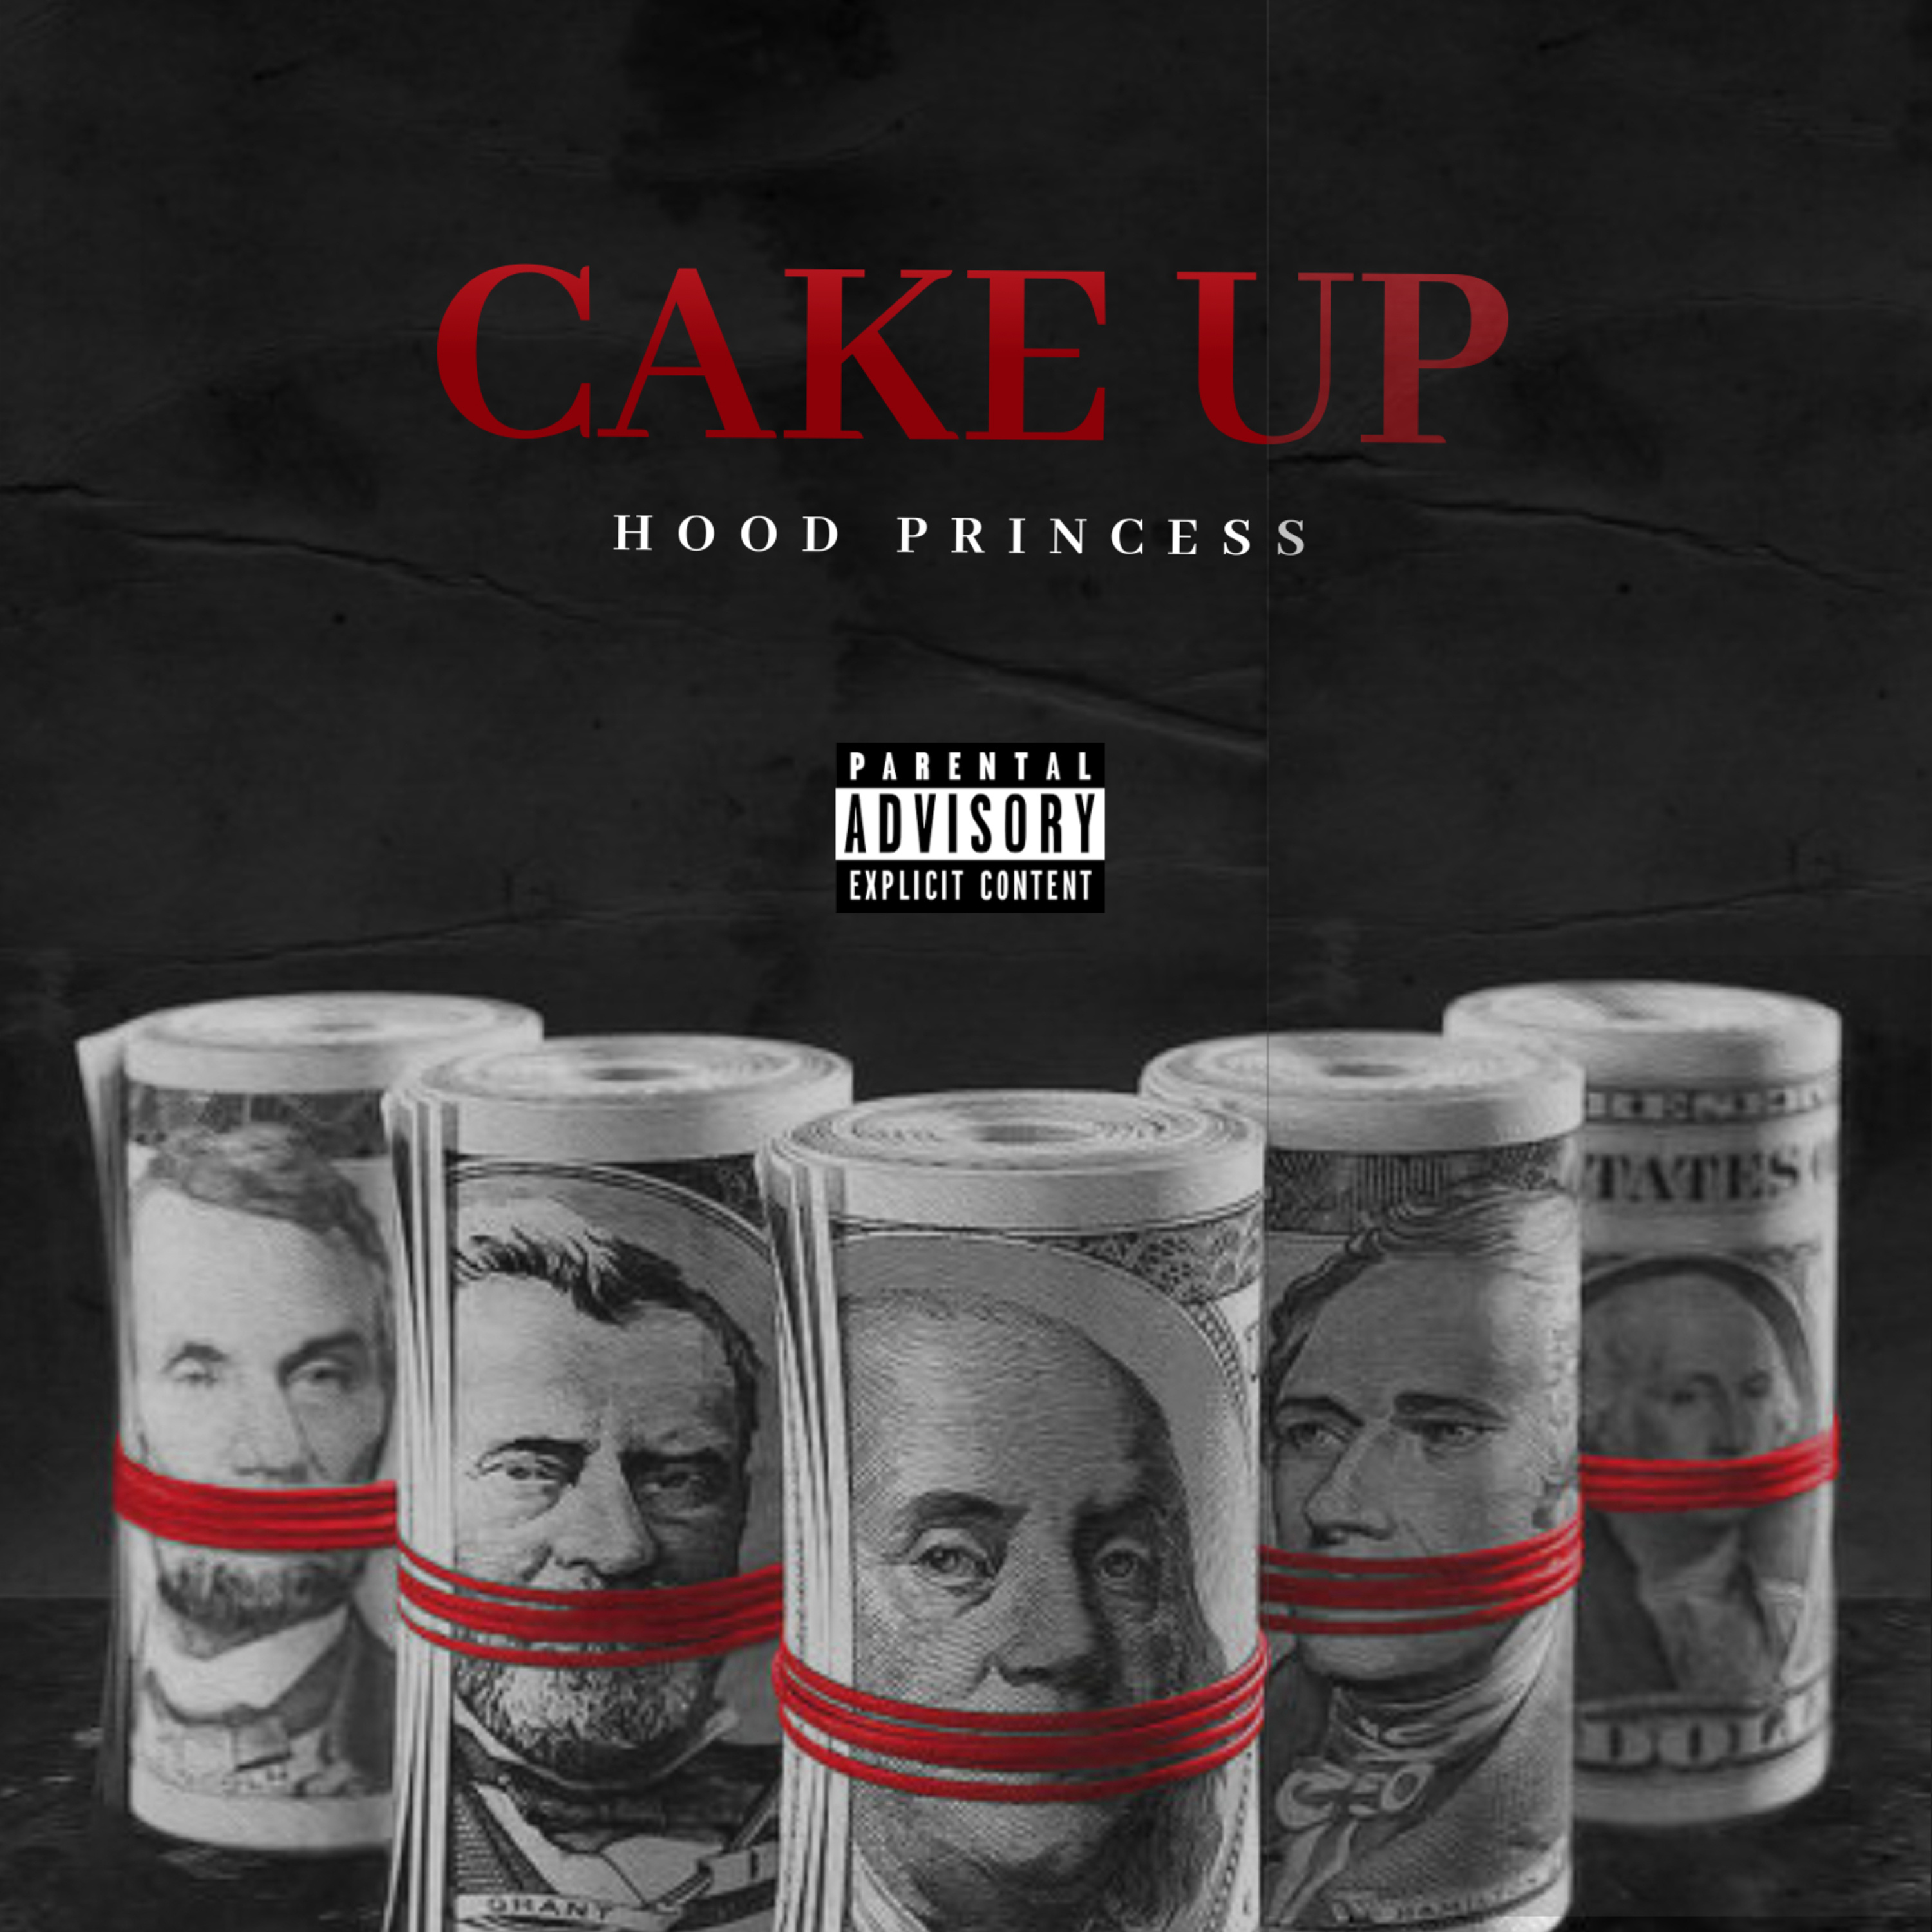 Art for Cake Up by Hood Princess